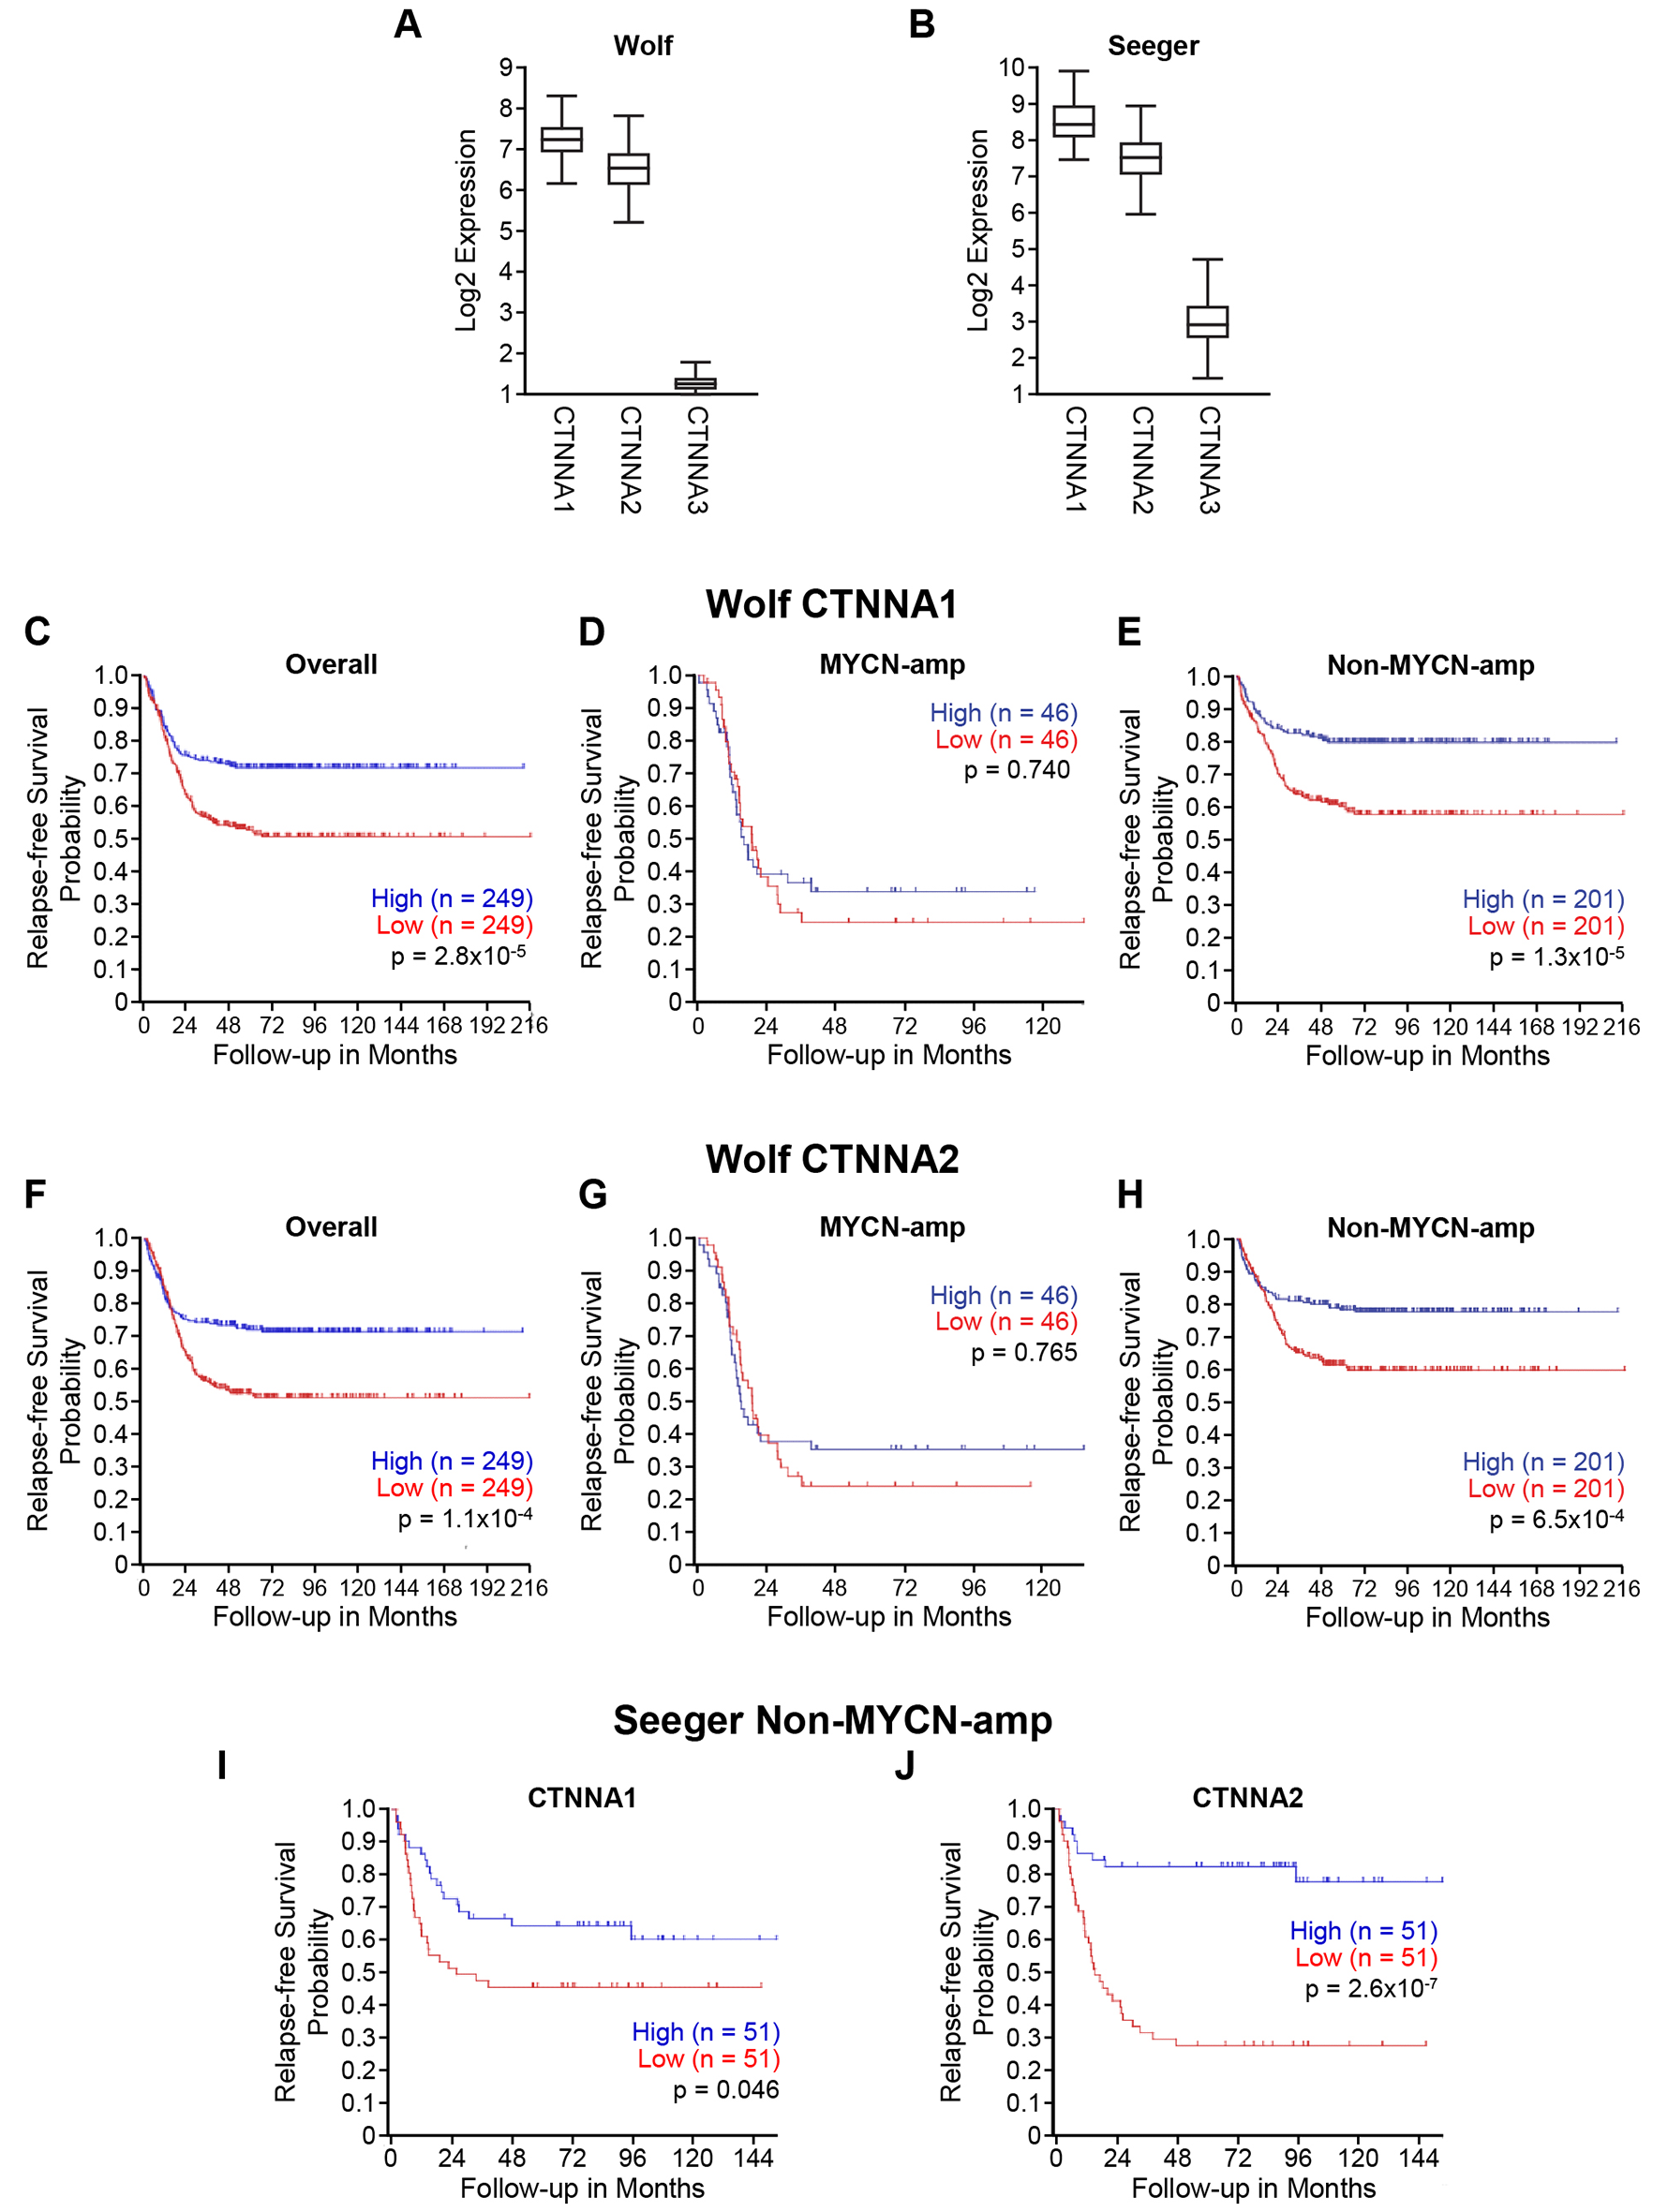 Low CTNNA2 expression is associated with disease relapse and mortality in patients with neuroblastoma lacking MYCN amplification.